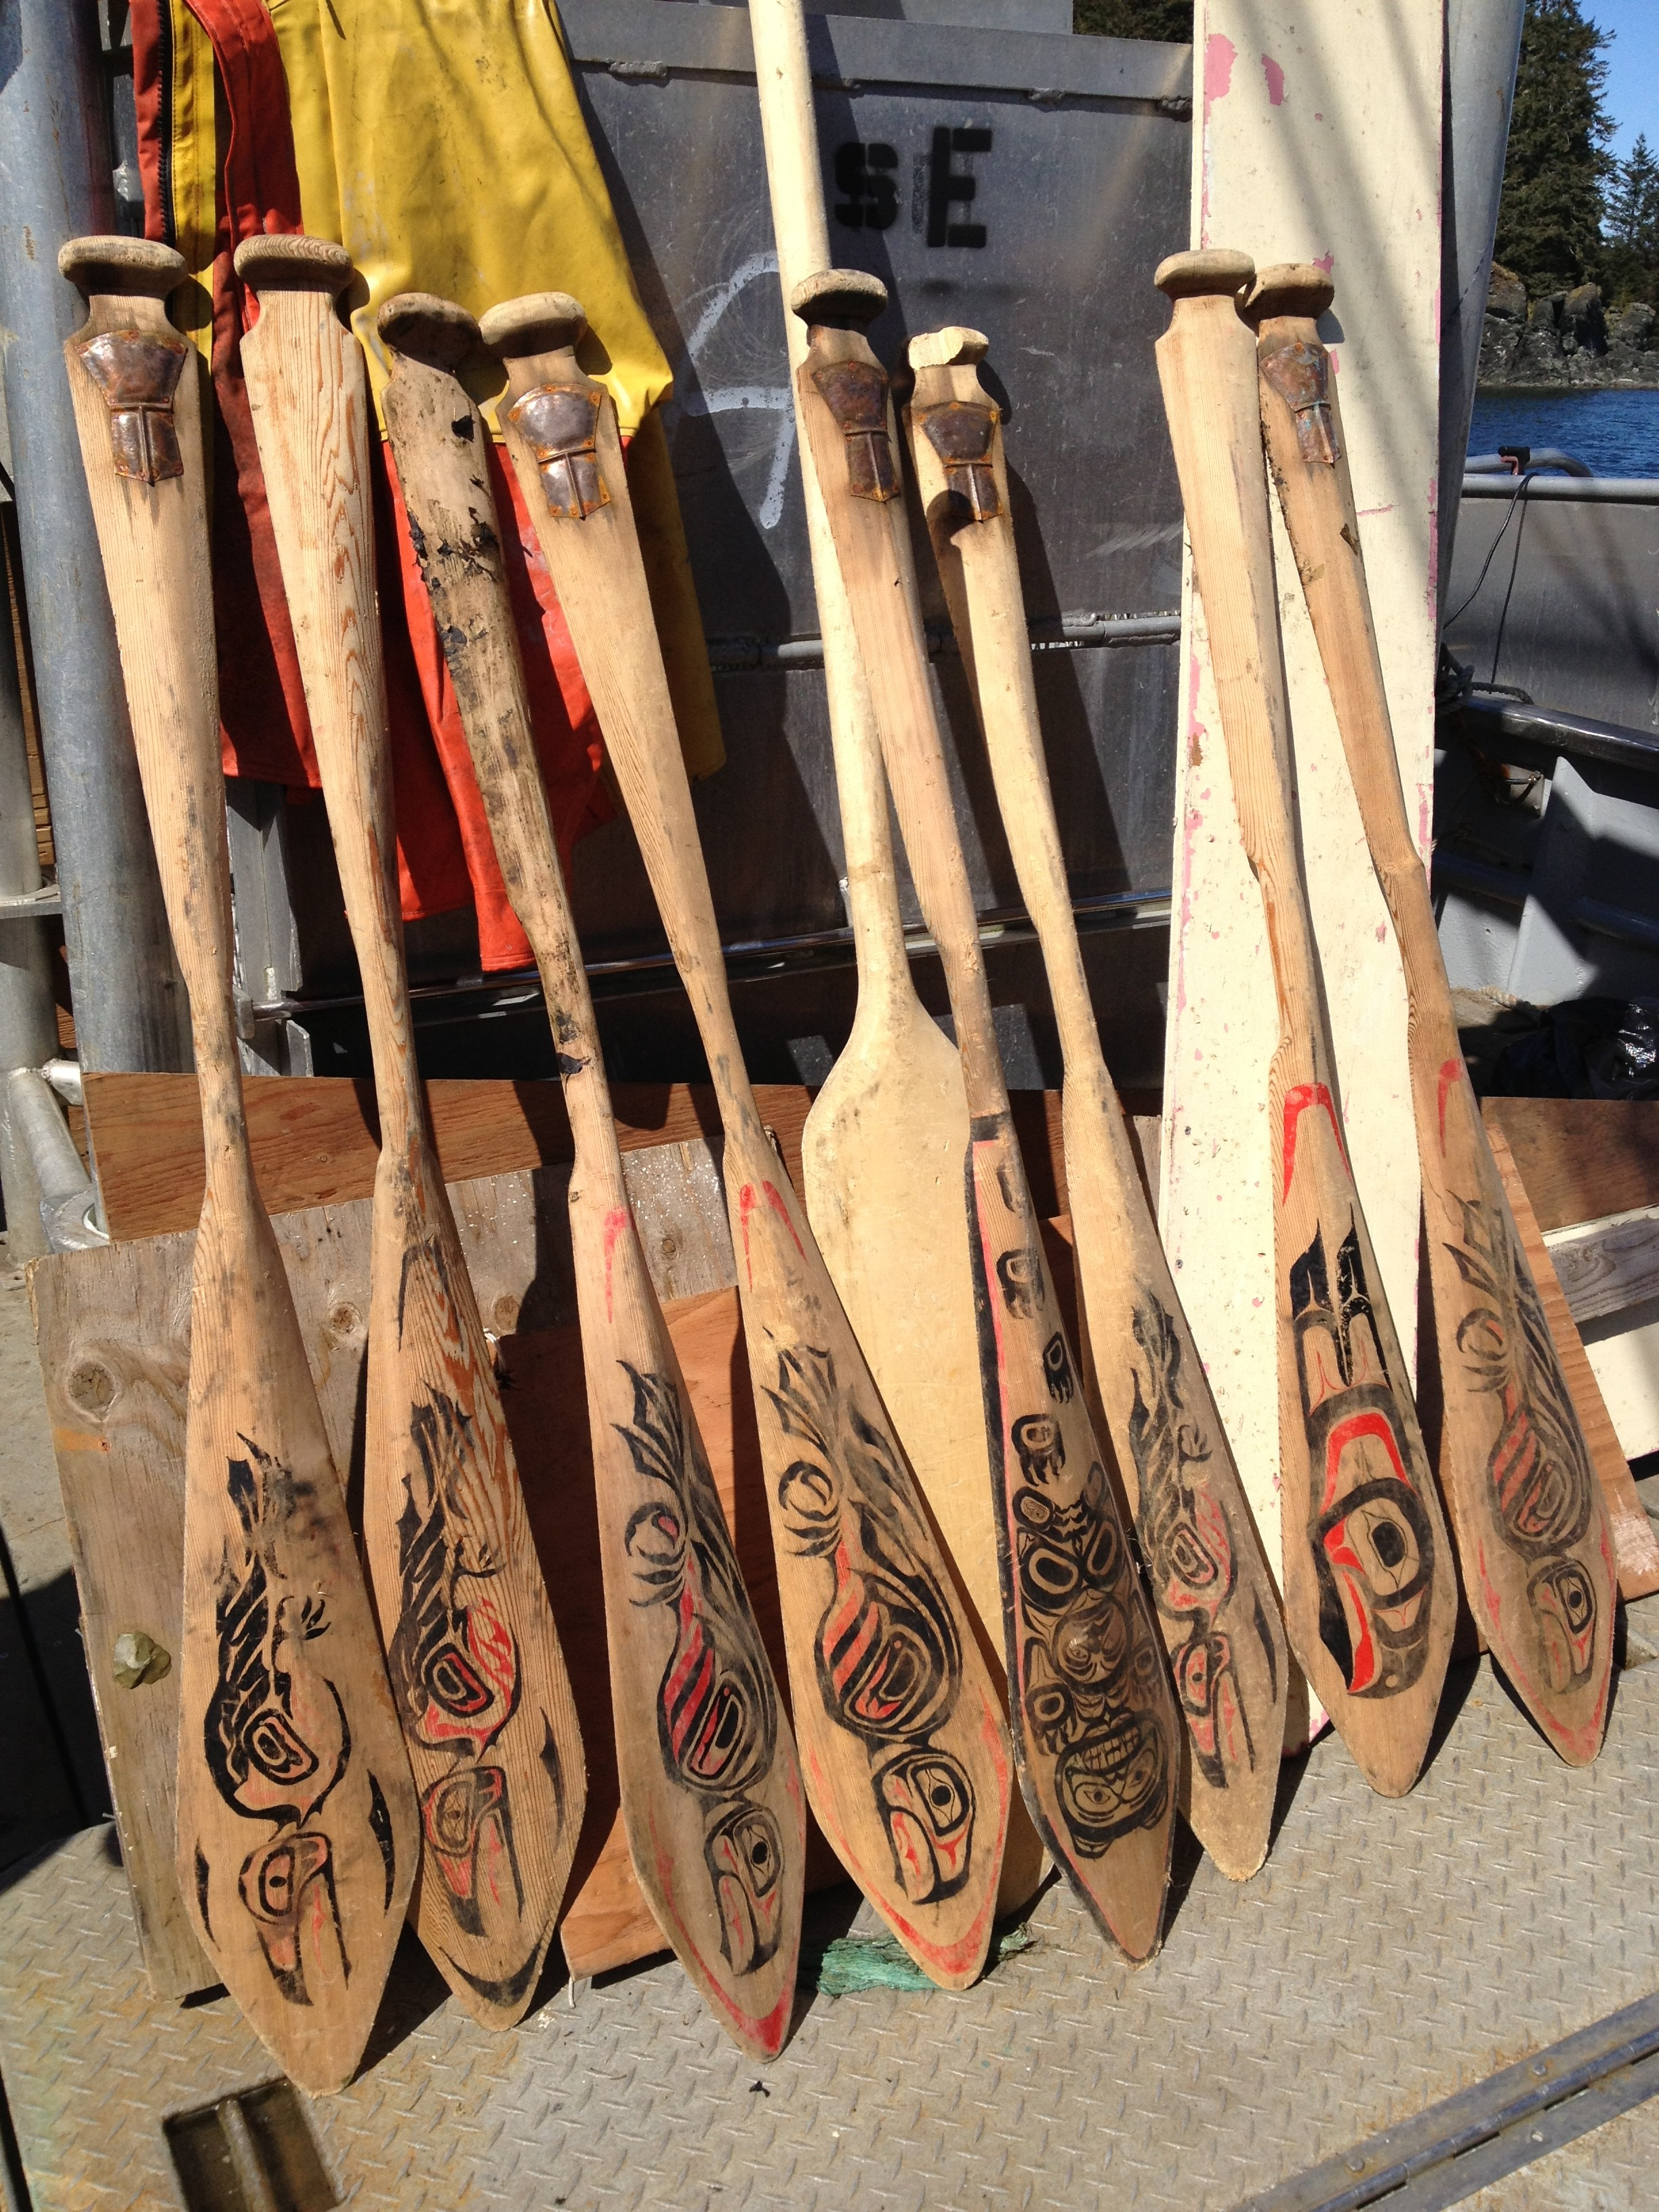 Fisherman finds, returns lost paddles